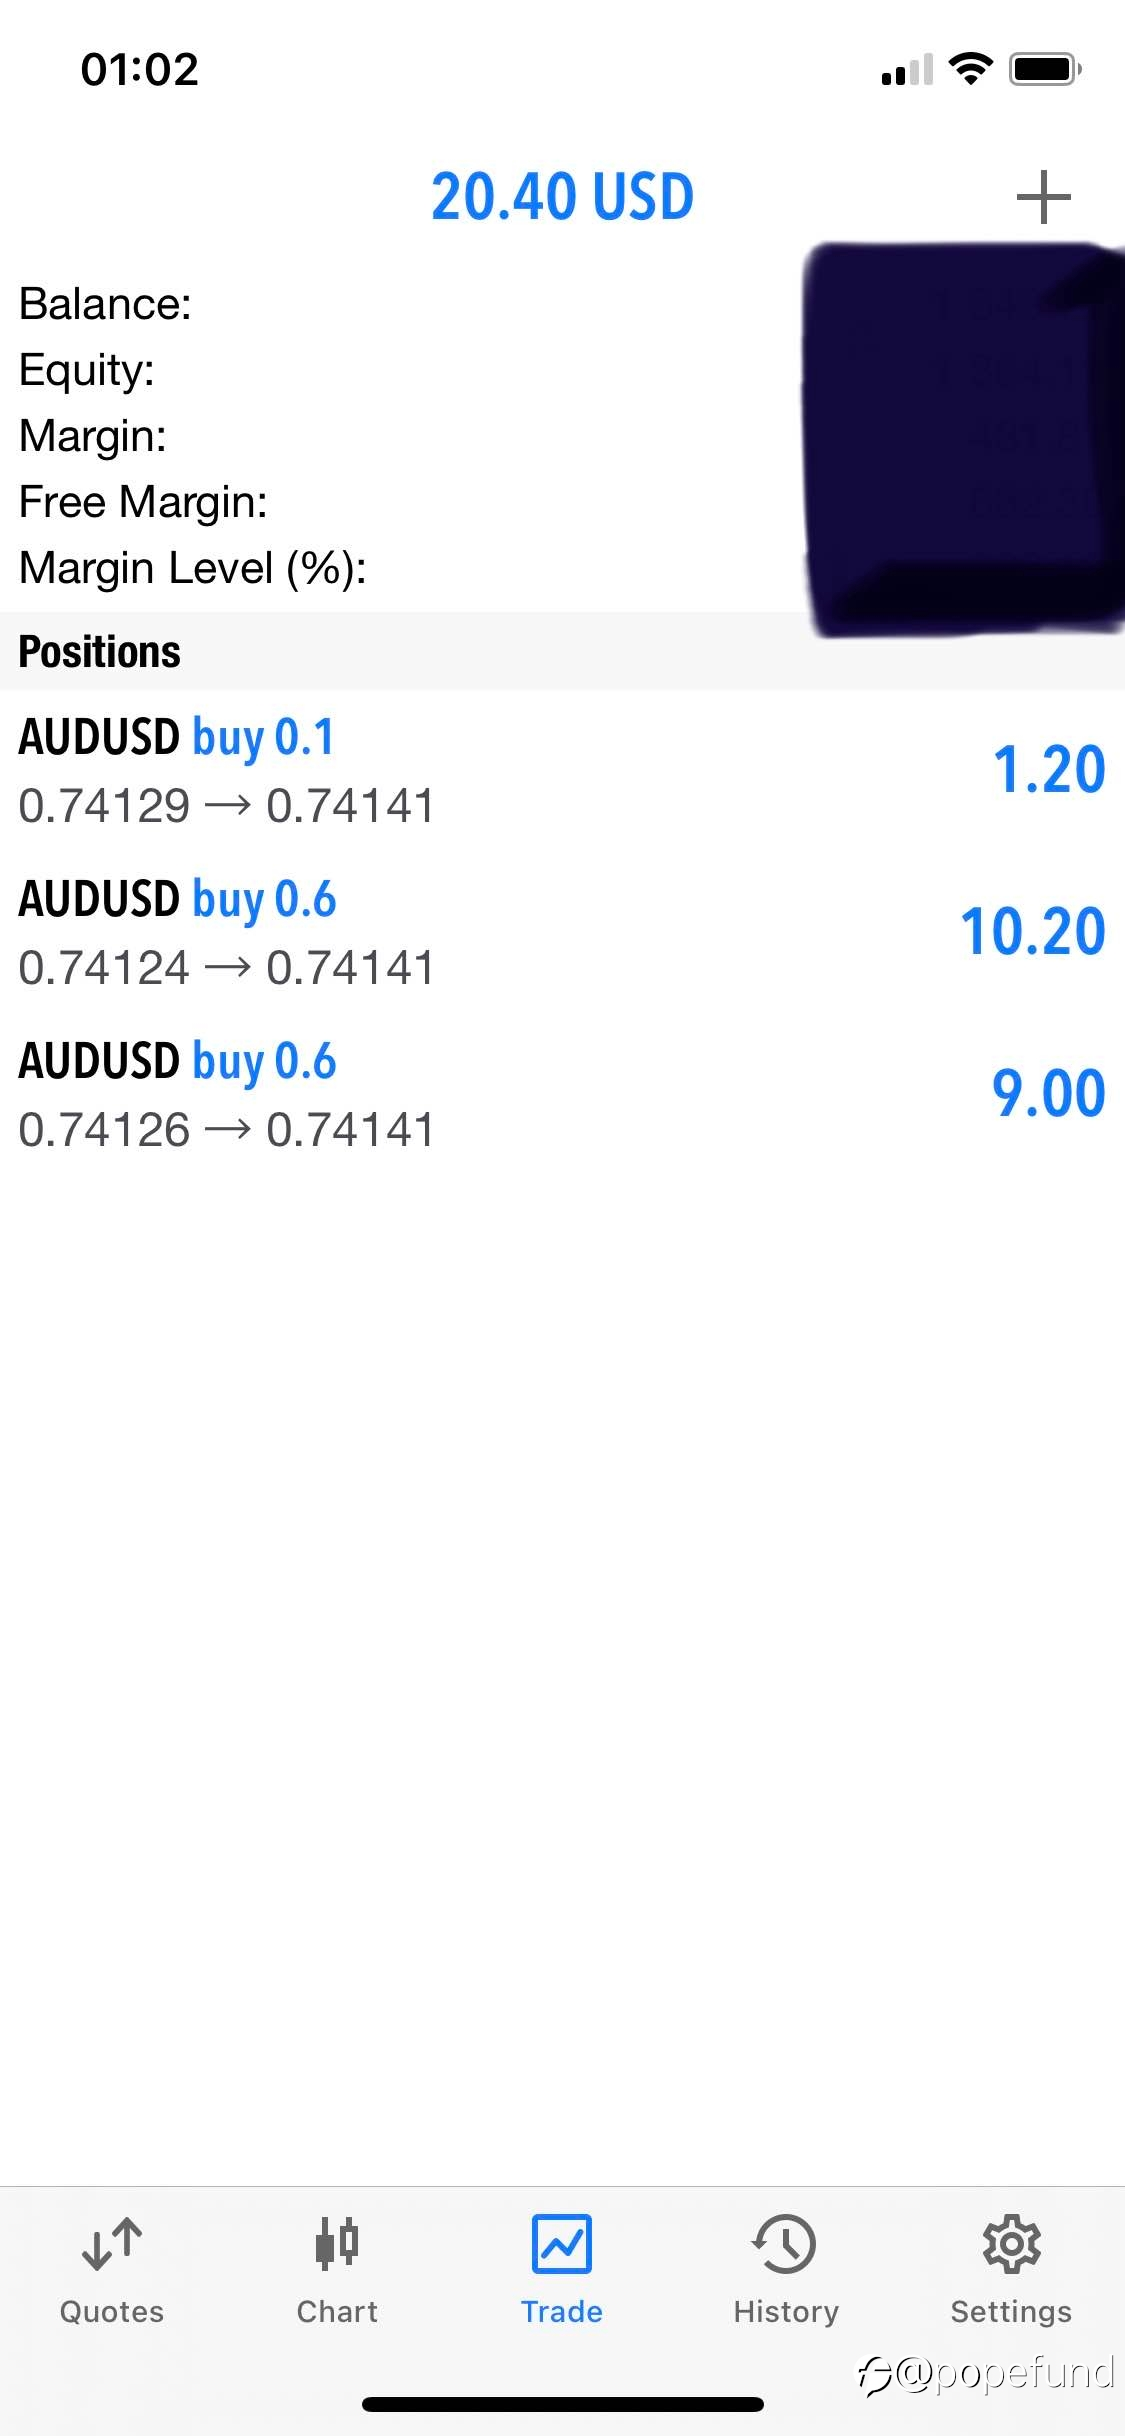 AUSSIE Longs, last strike for the past exhausting week, really need a good rest…